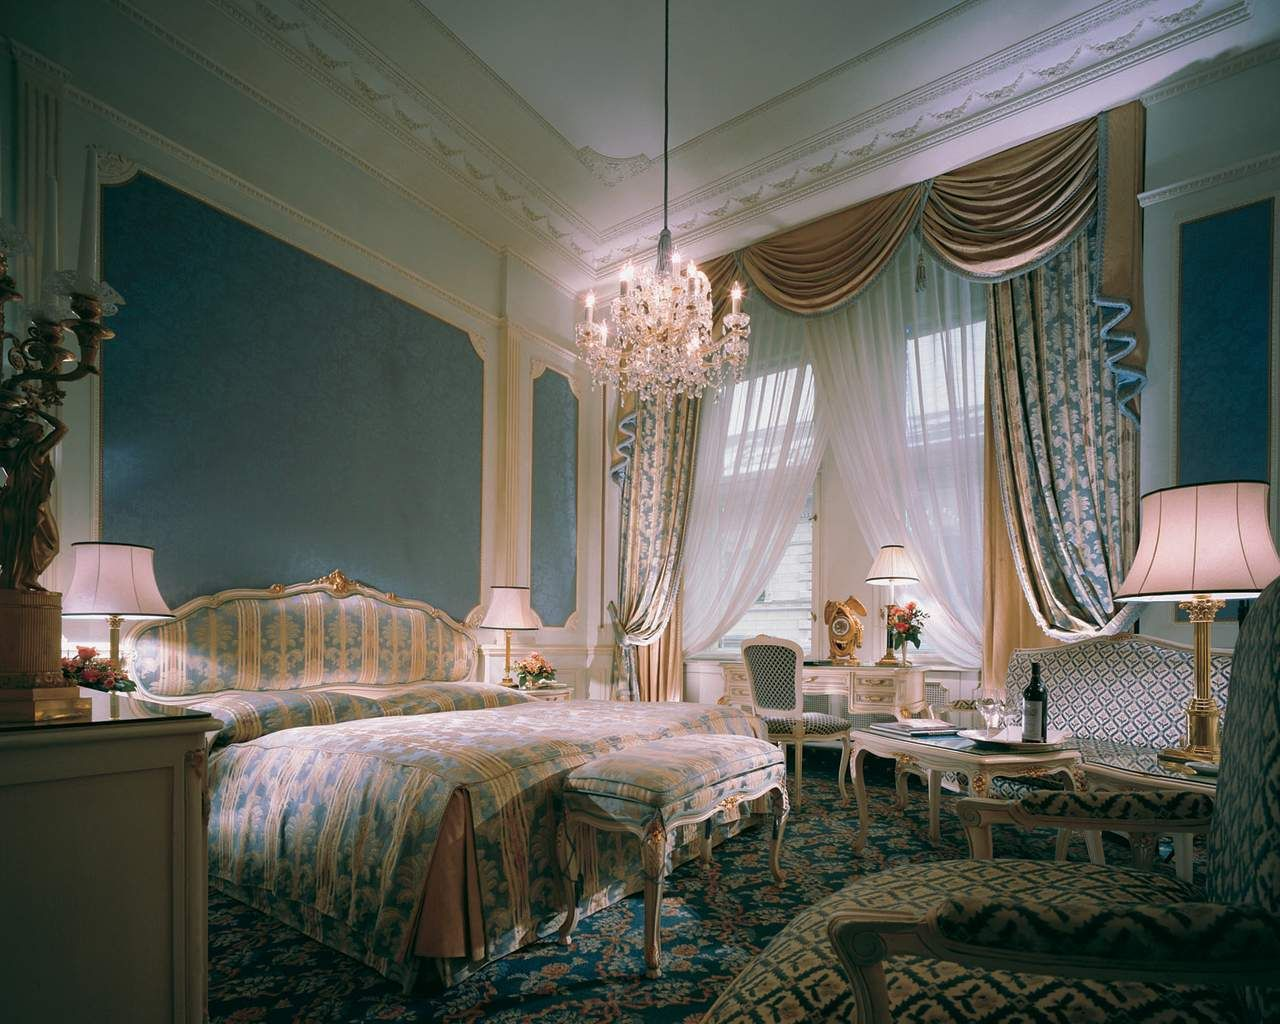 Best Royal Bedroom Google Search Royal Bedroom Refrences 640 x 480